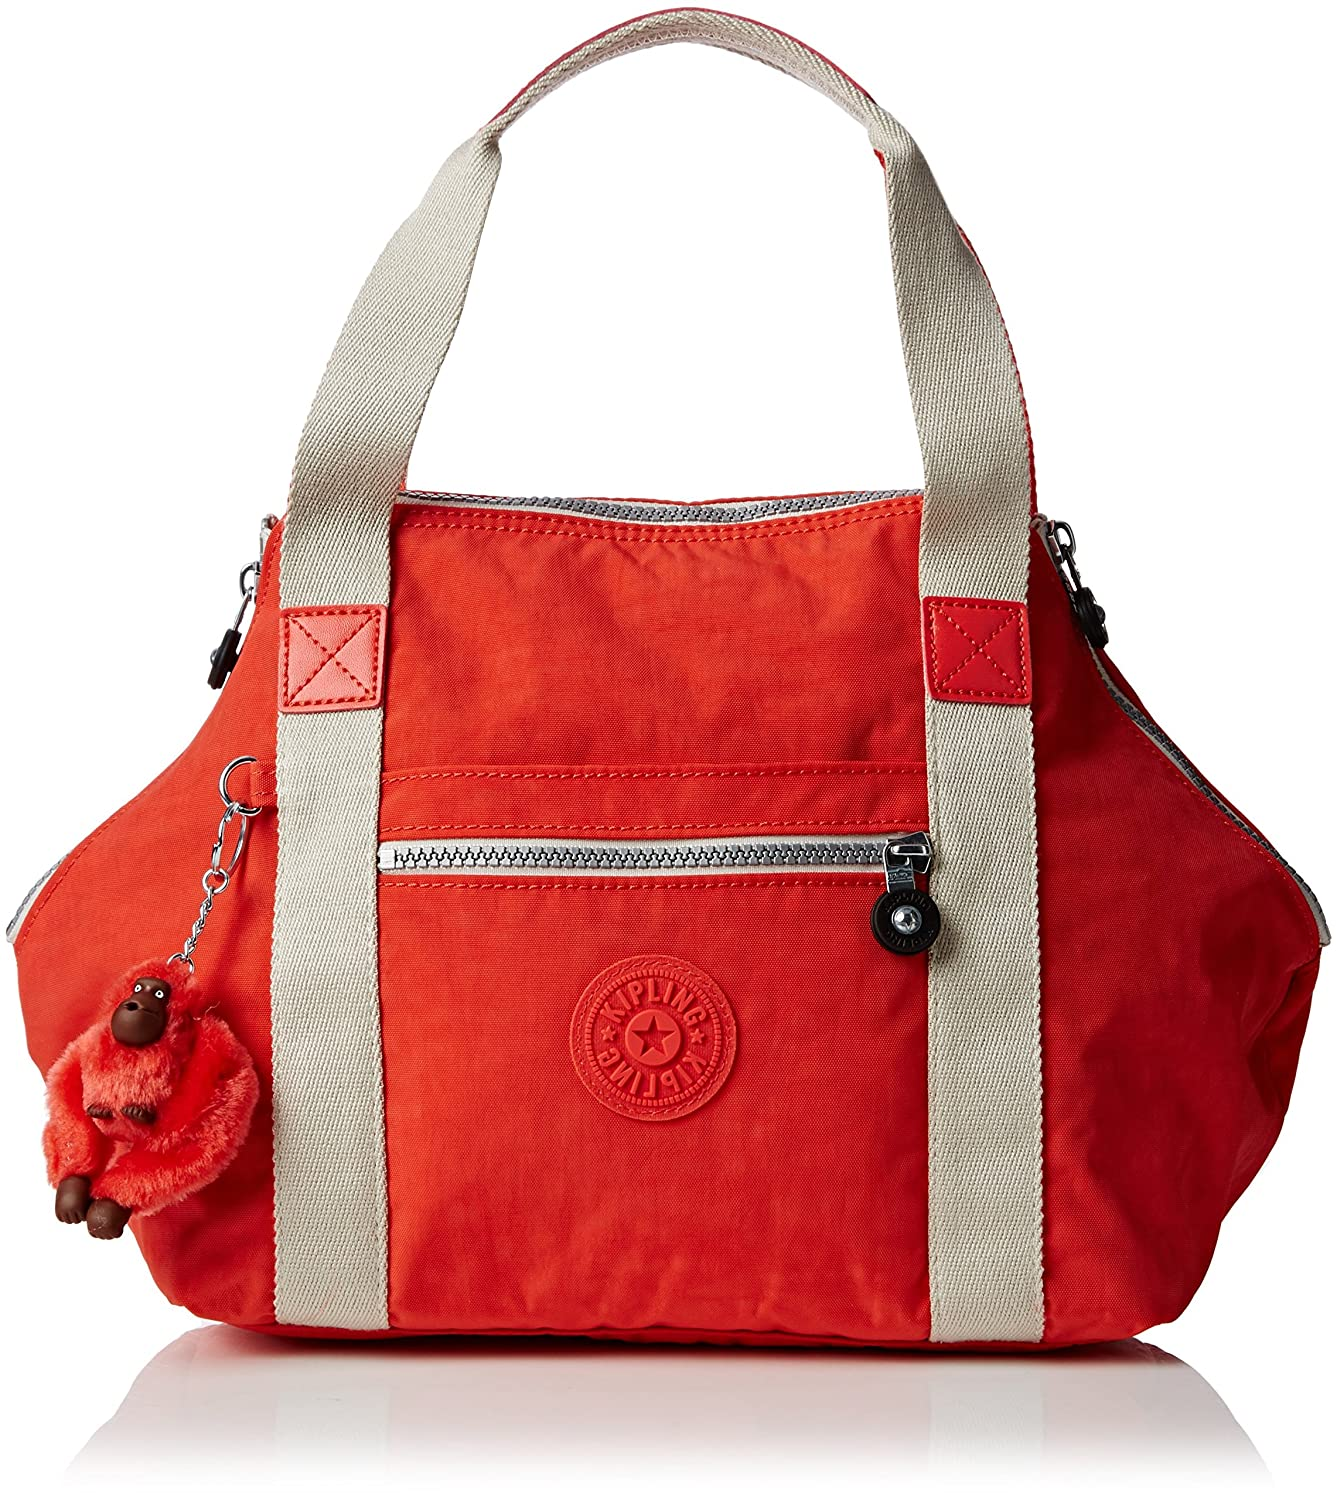 Kipling Tasche amazon